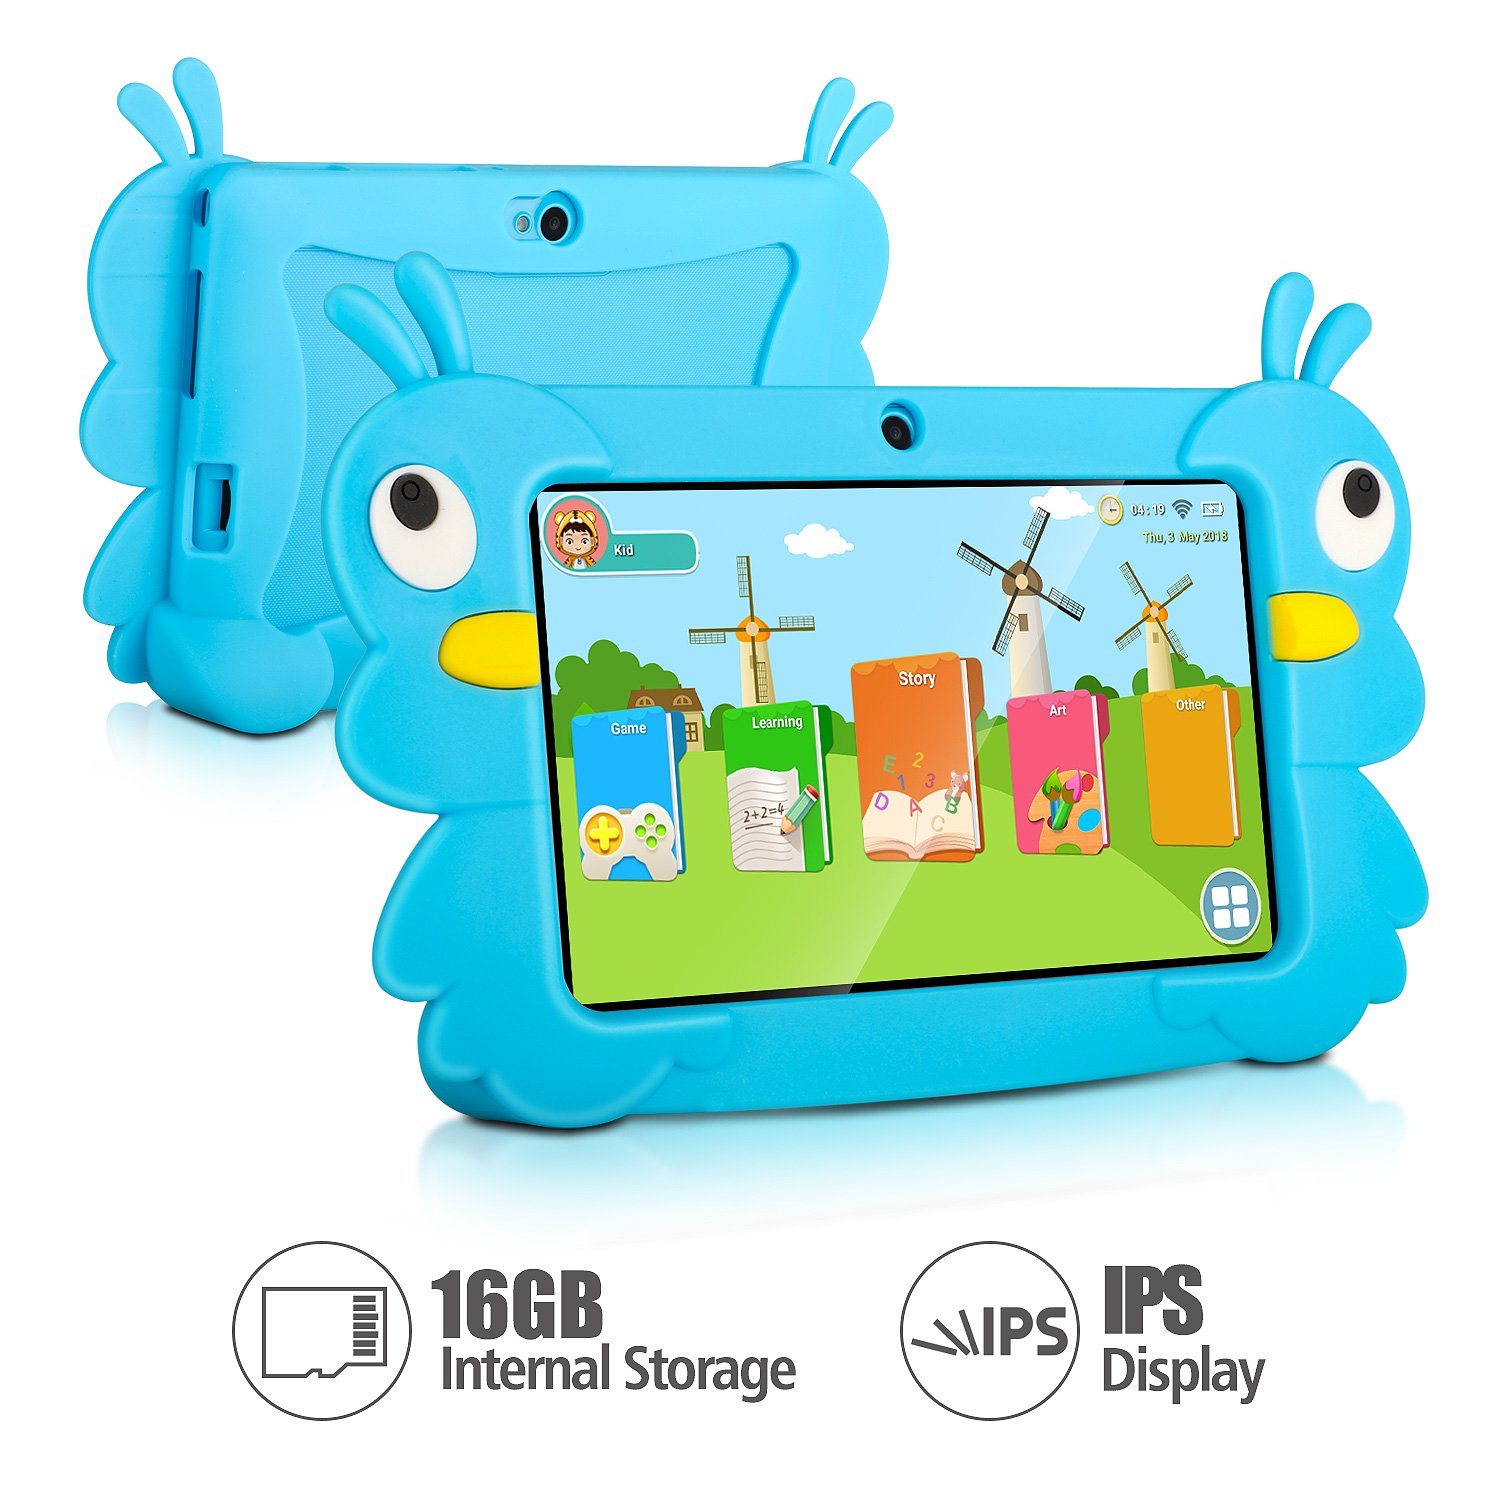 7 Inch Kids Tablet PC Quad Core 1024600 IPS Eye Protect Display 1GB RAM 16GB Storage Bluetooth WiFi Dual Camera with Kids Educational Software Parental Control (Blue) TOP TEK Electronics KIDS07